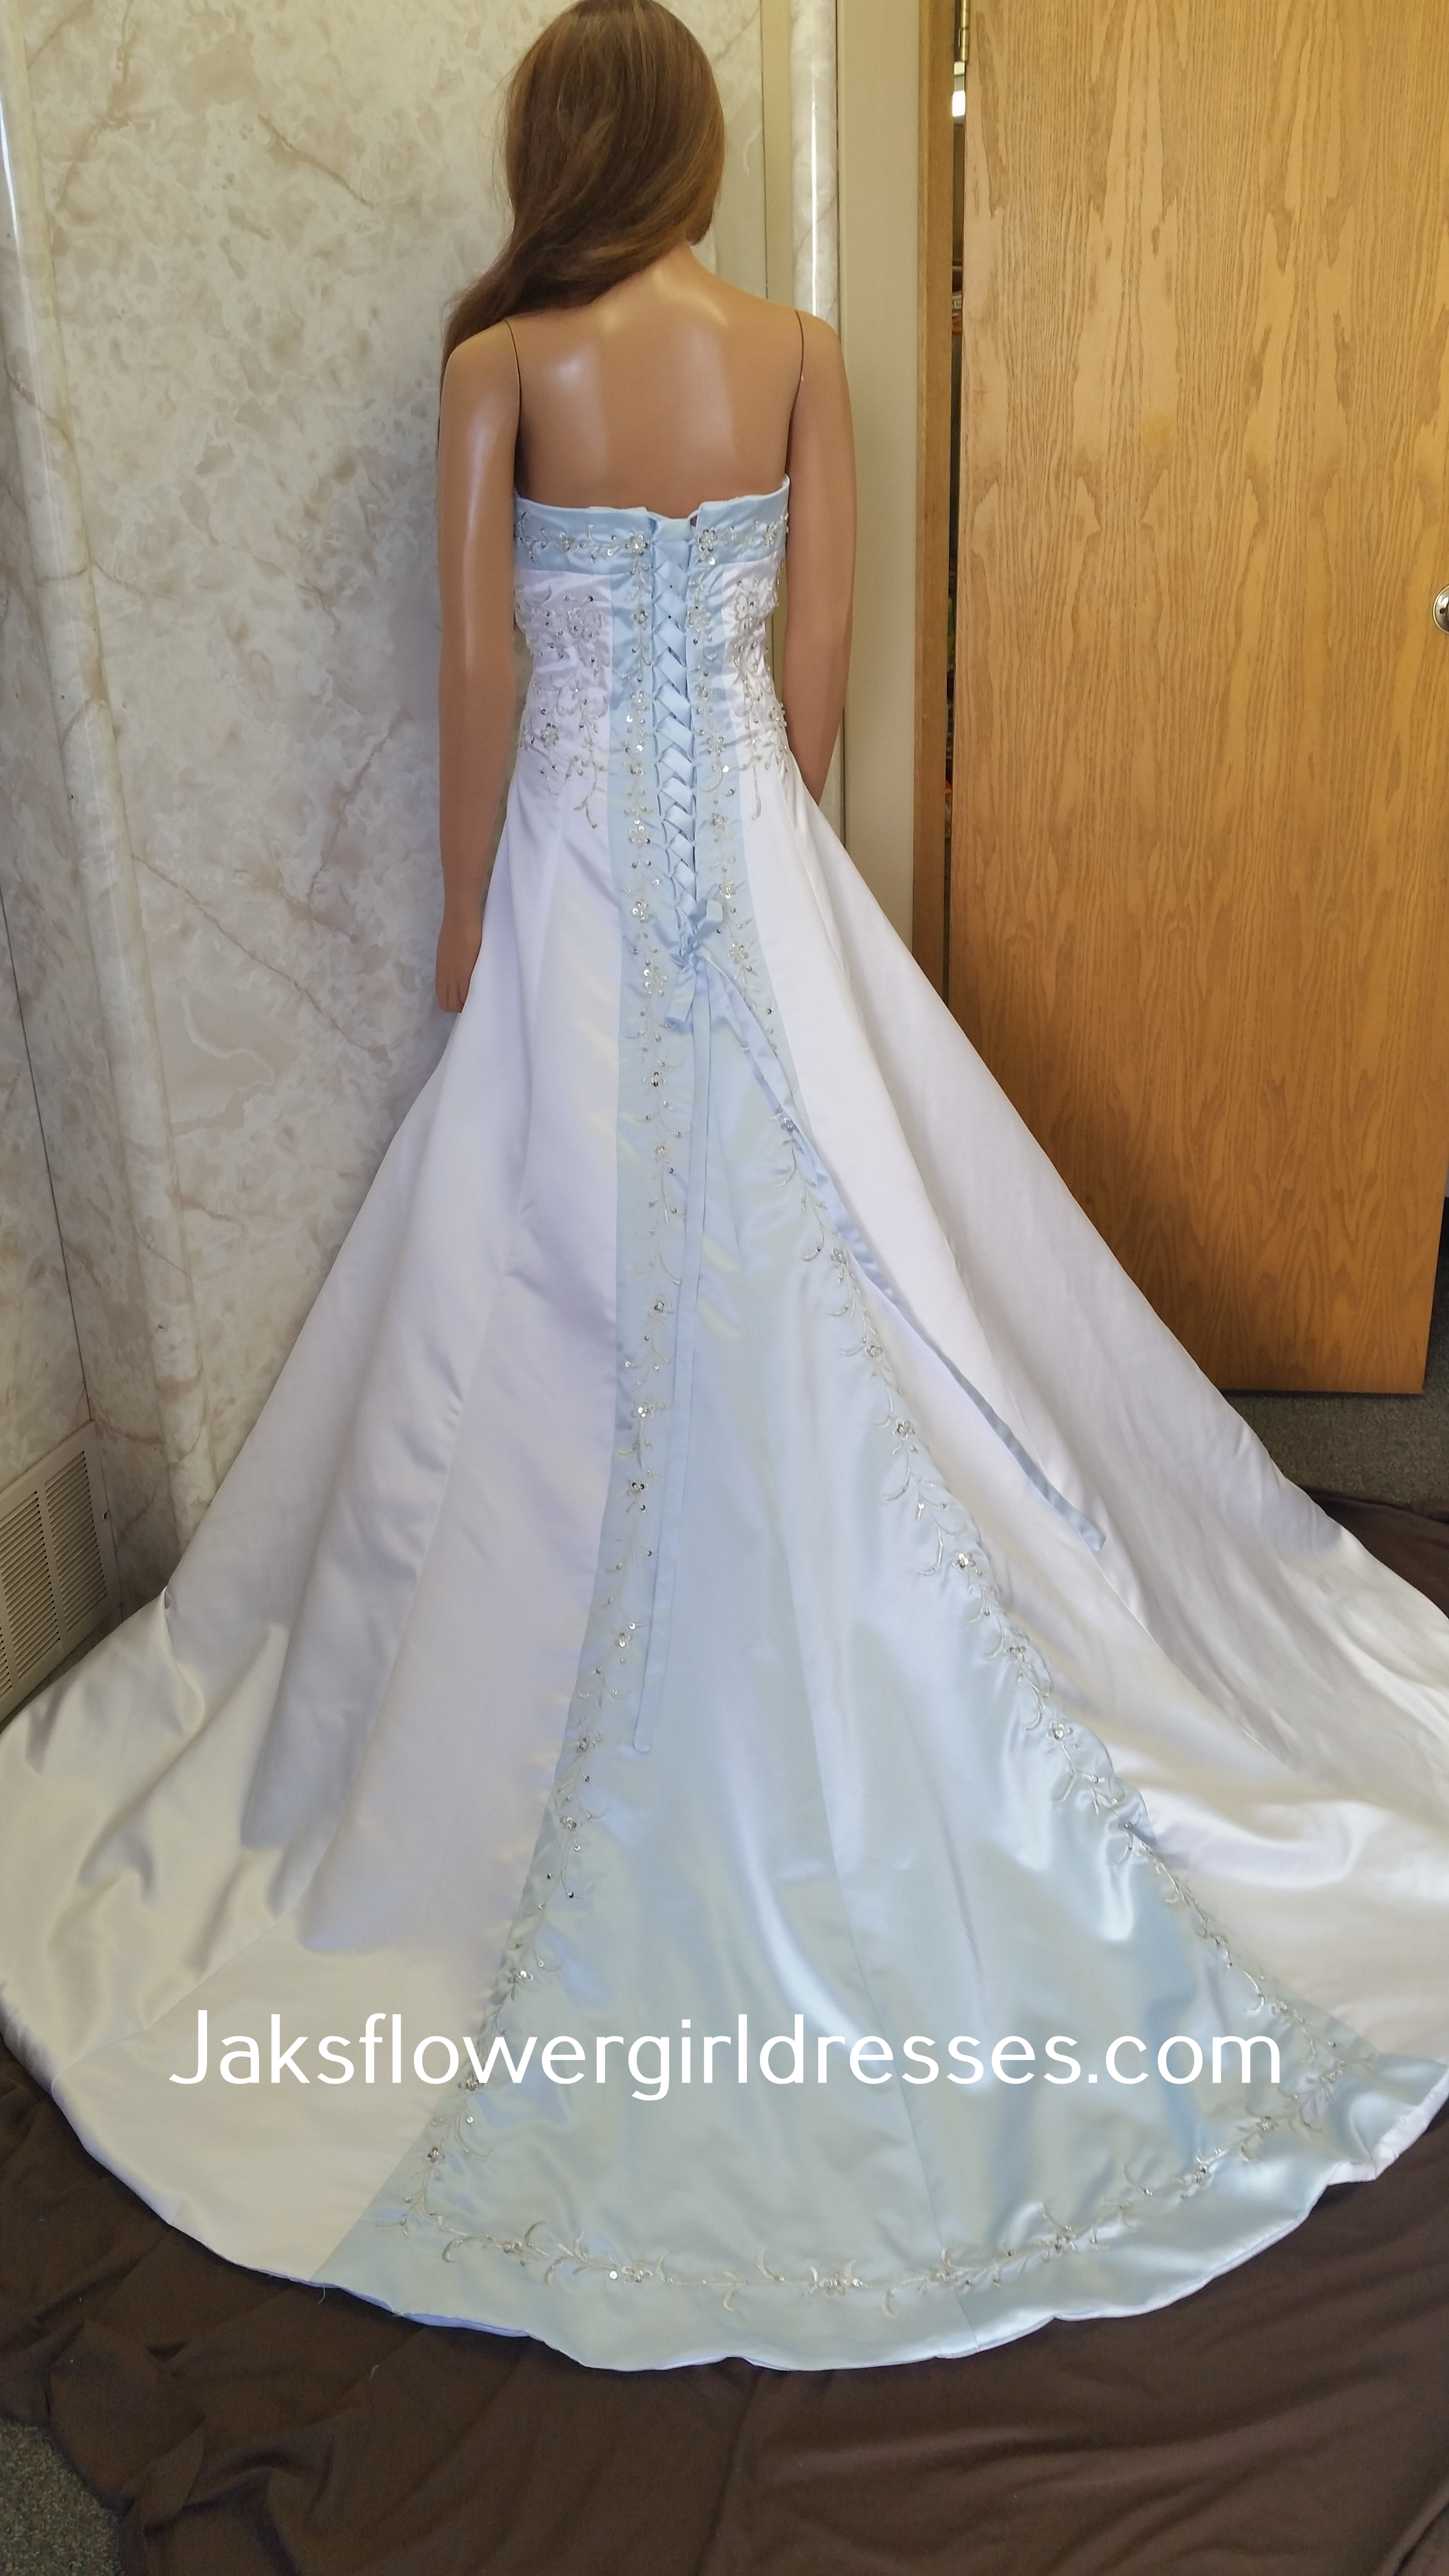 white and light blue wedding gown